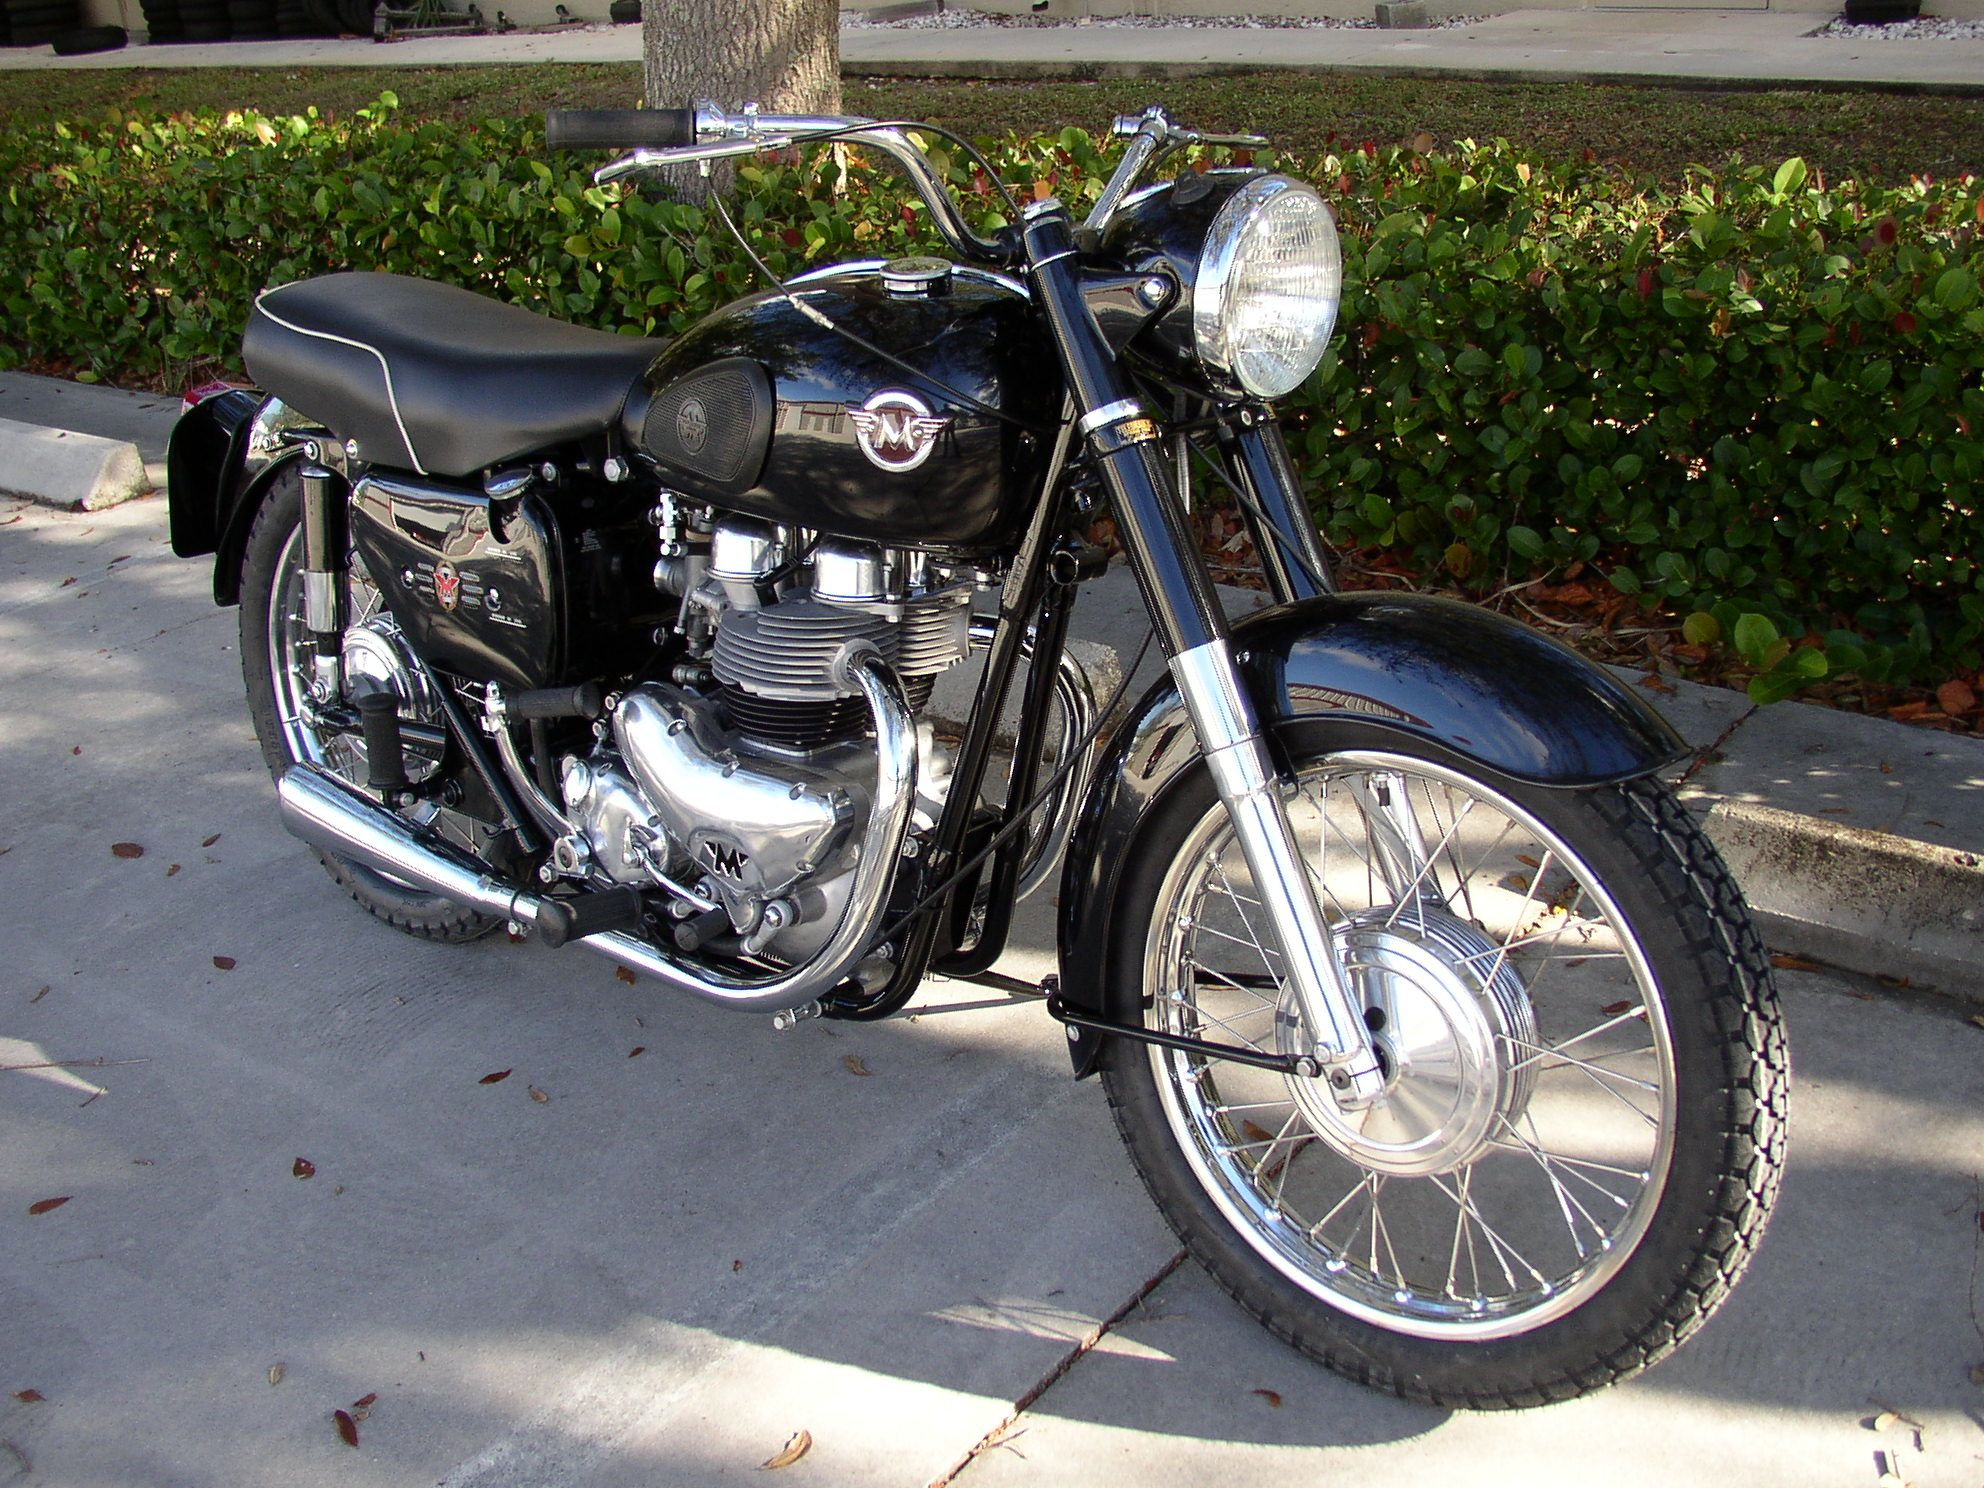 Rare 1961 G9 Matchless restored by Jim Thomas